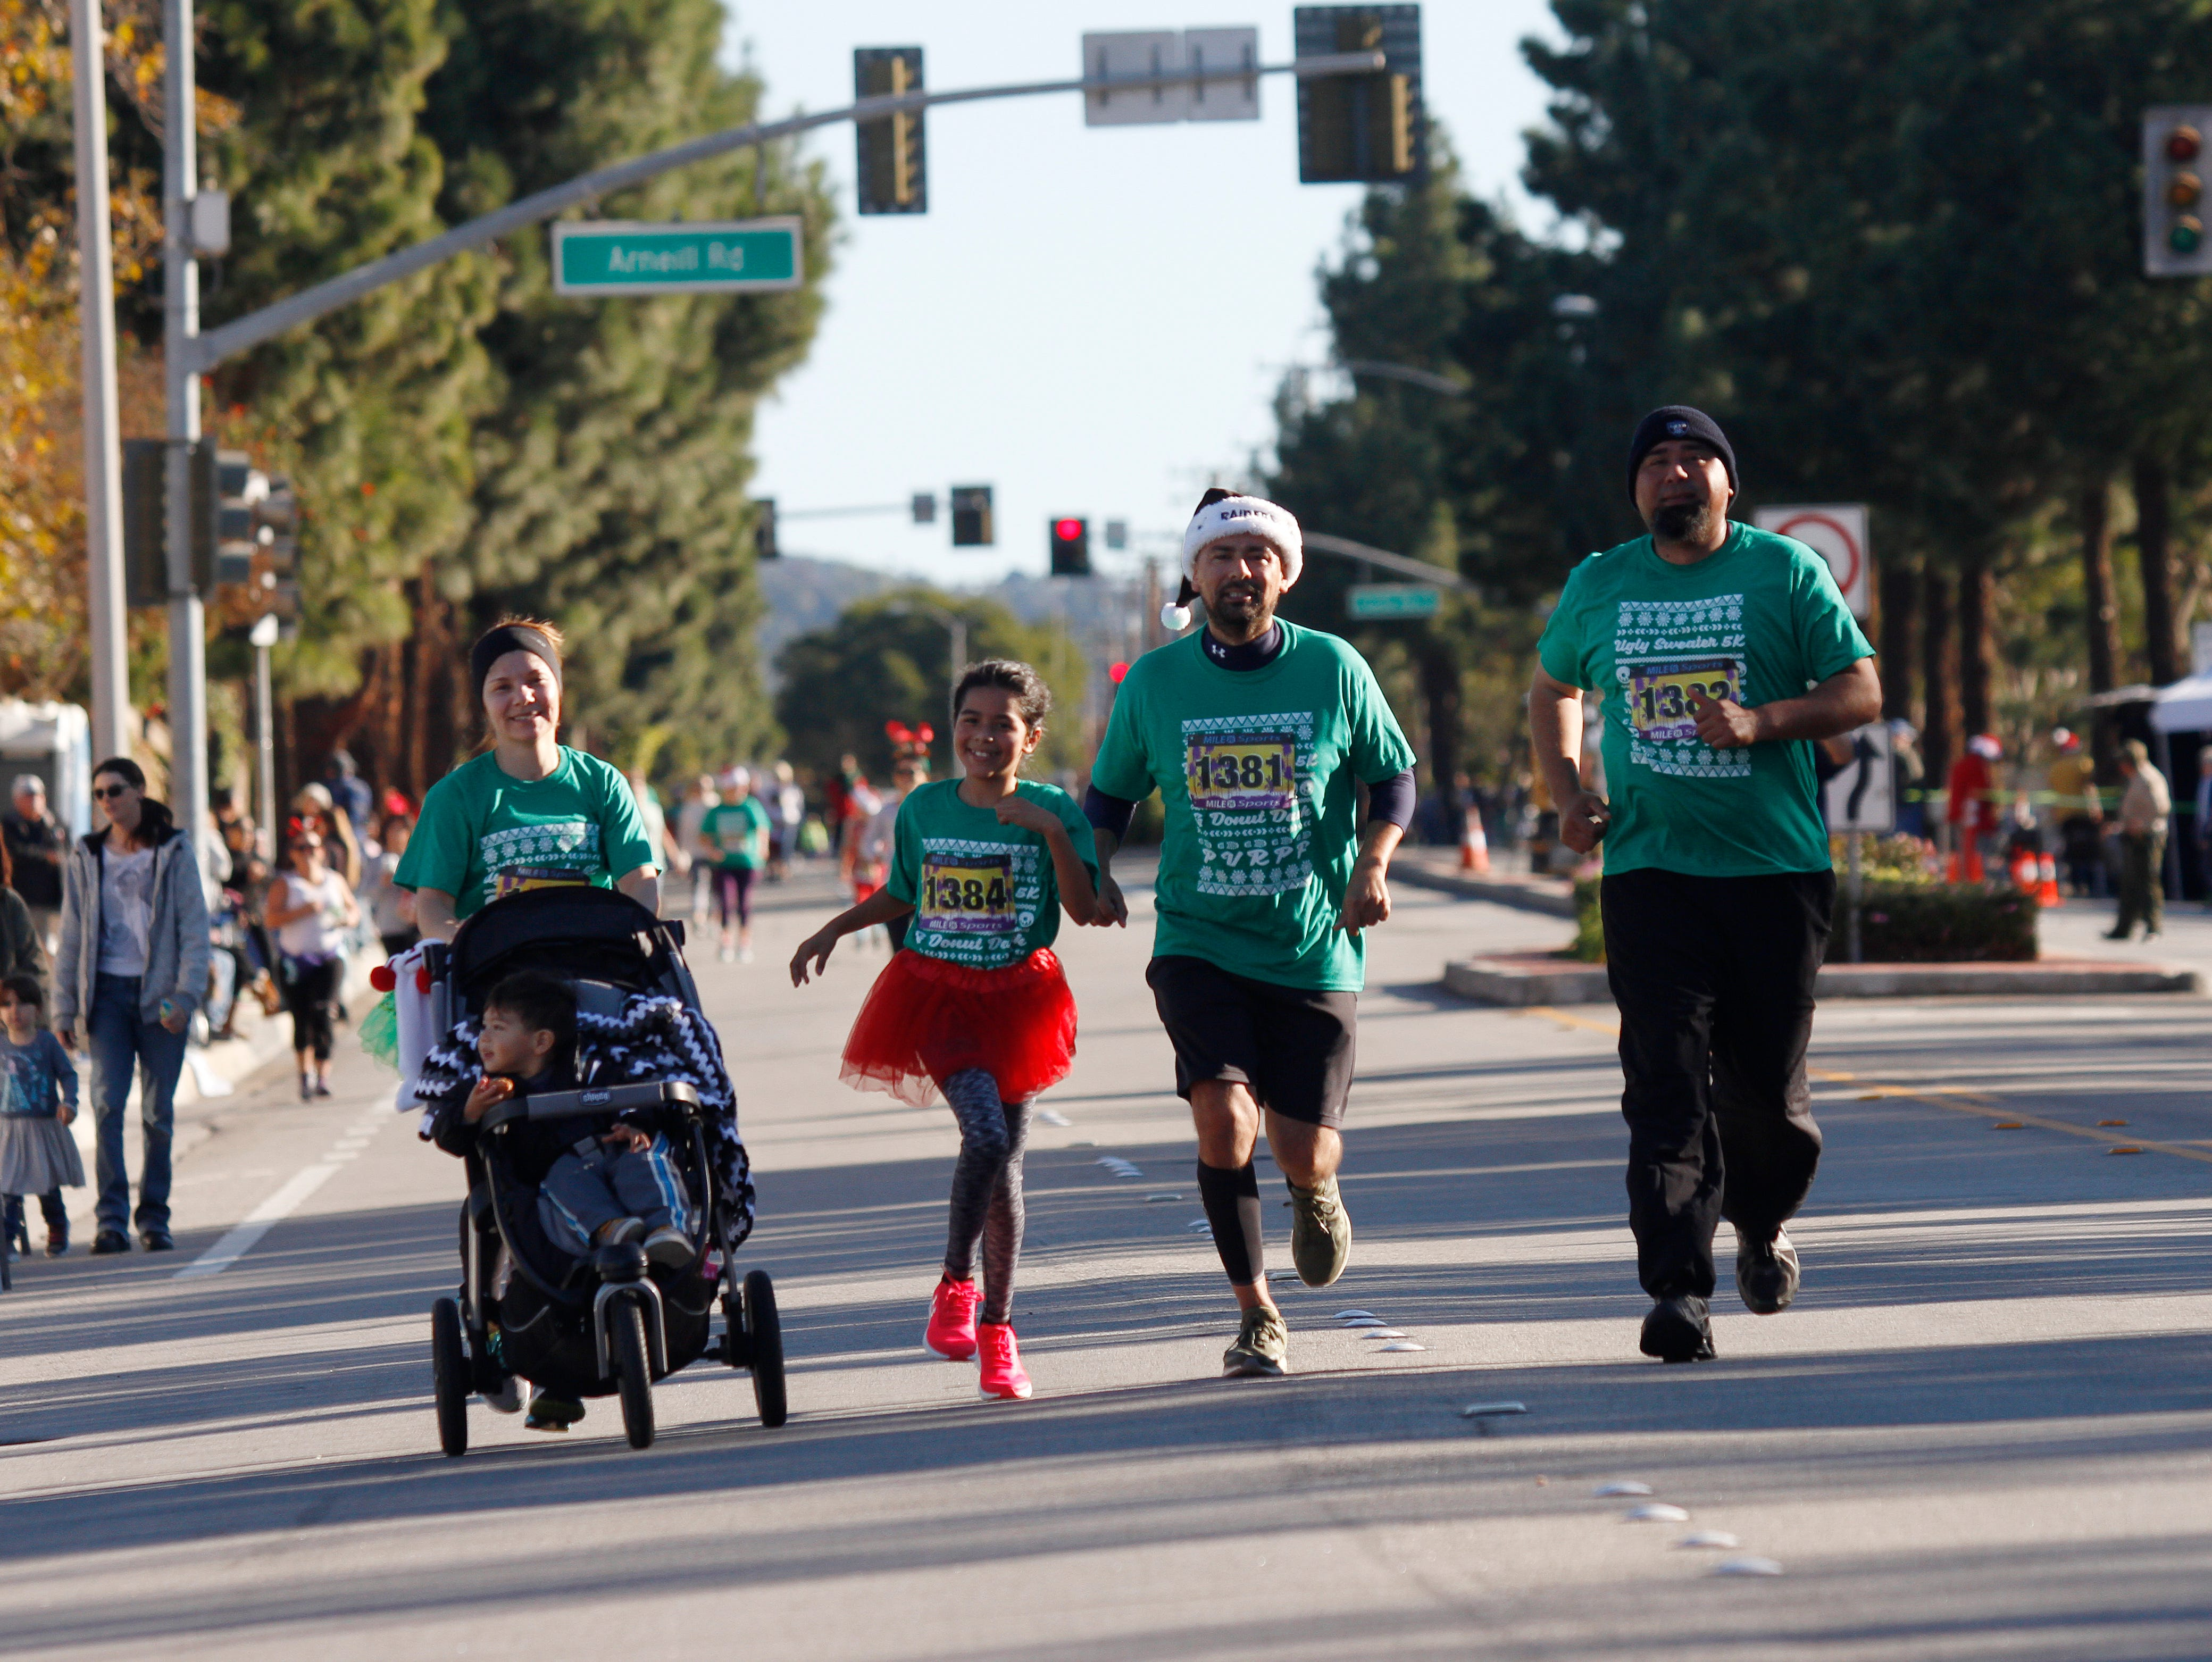 From left, Irma Andrade, pushing her son Ebe Jr., runs next to her daughter Layah, husband Ebe and brother-in-law Fernando on Saturday during Christmas festivities in Camarillo that included a run, parade and more.